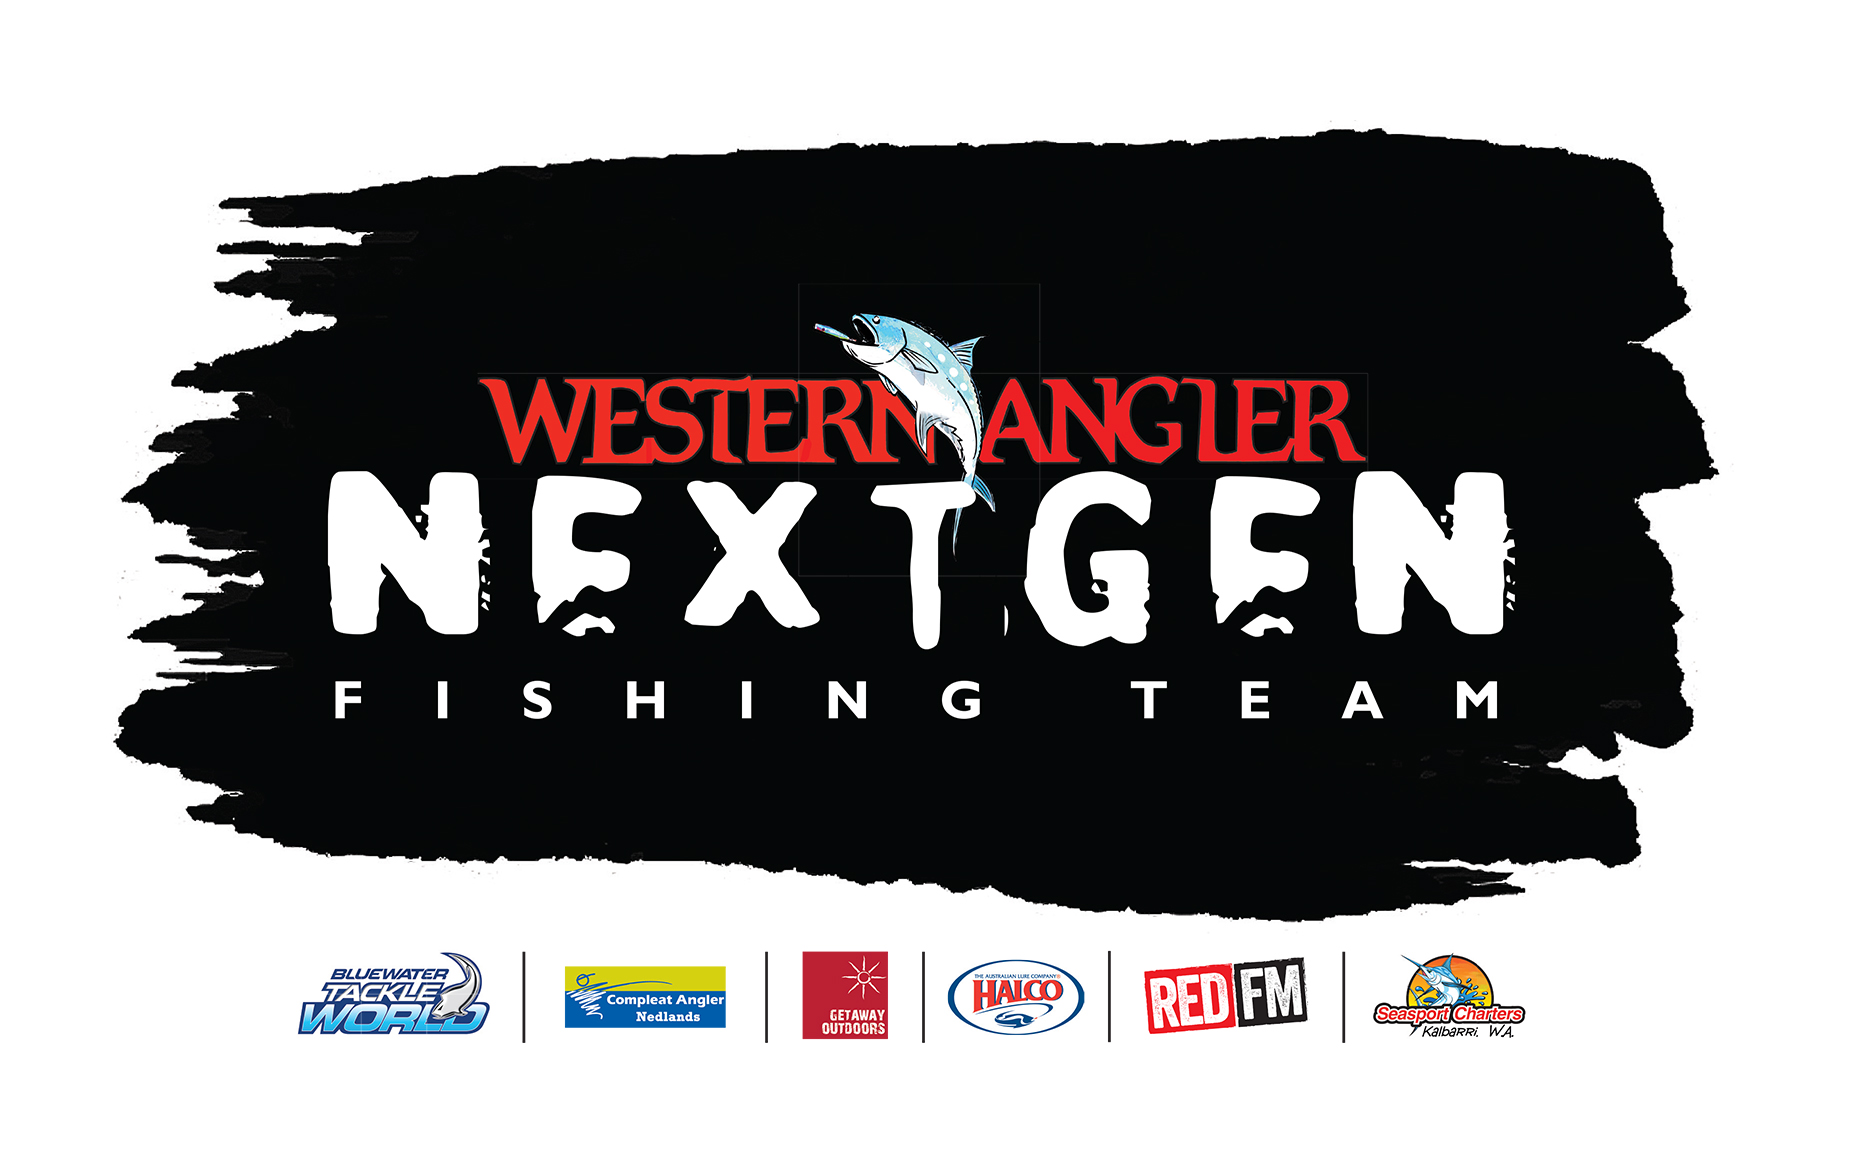 Western Angler NextGen Fishing Team